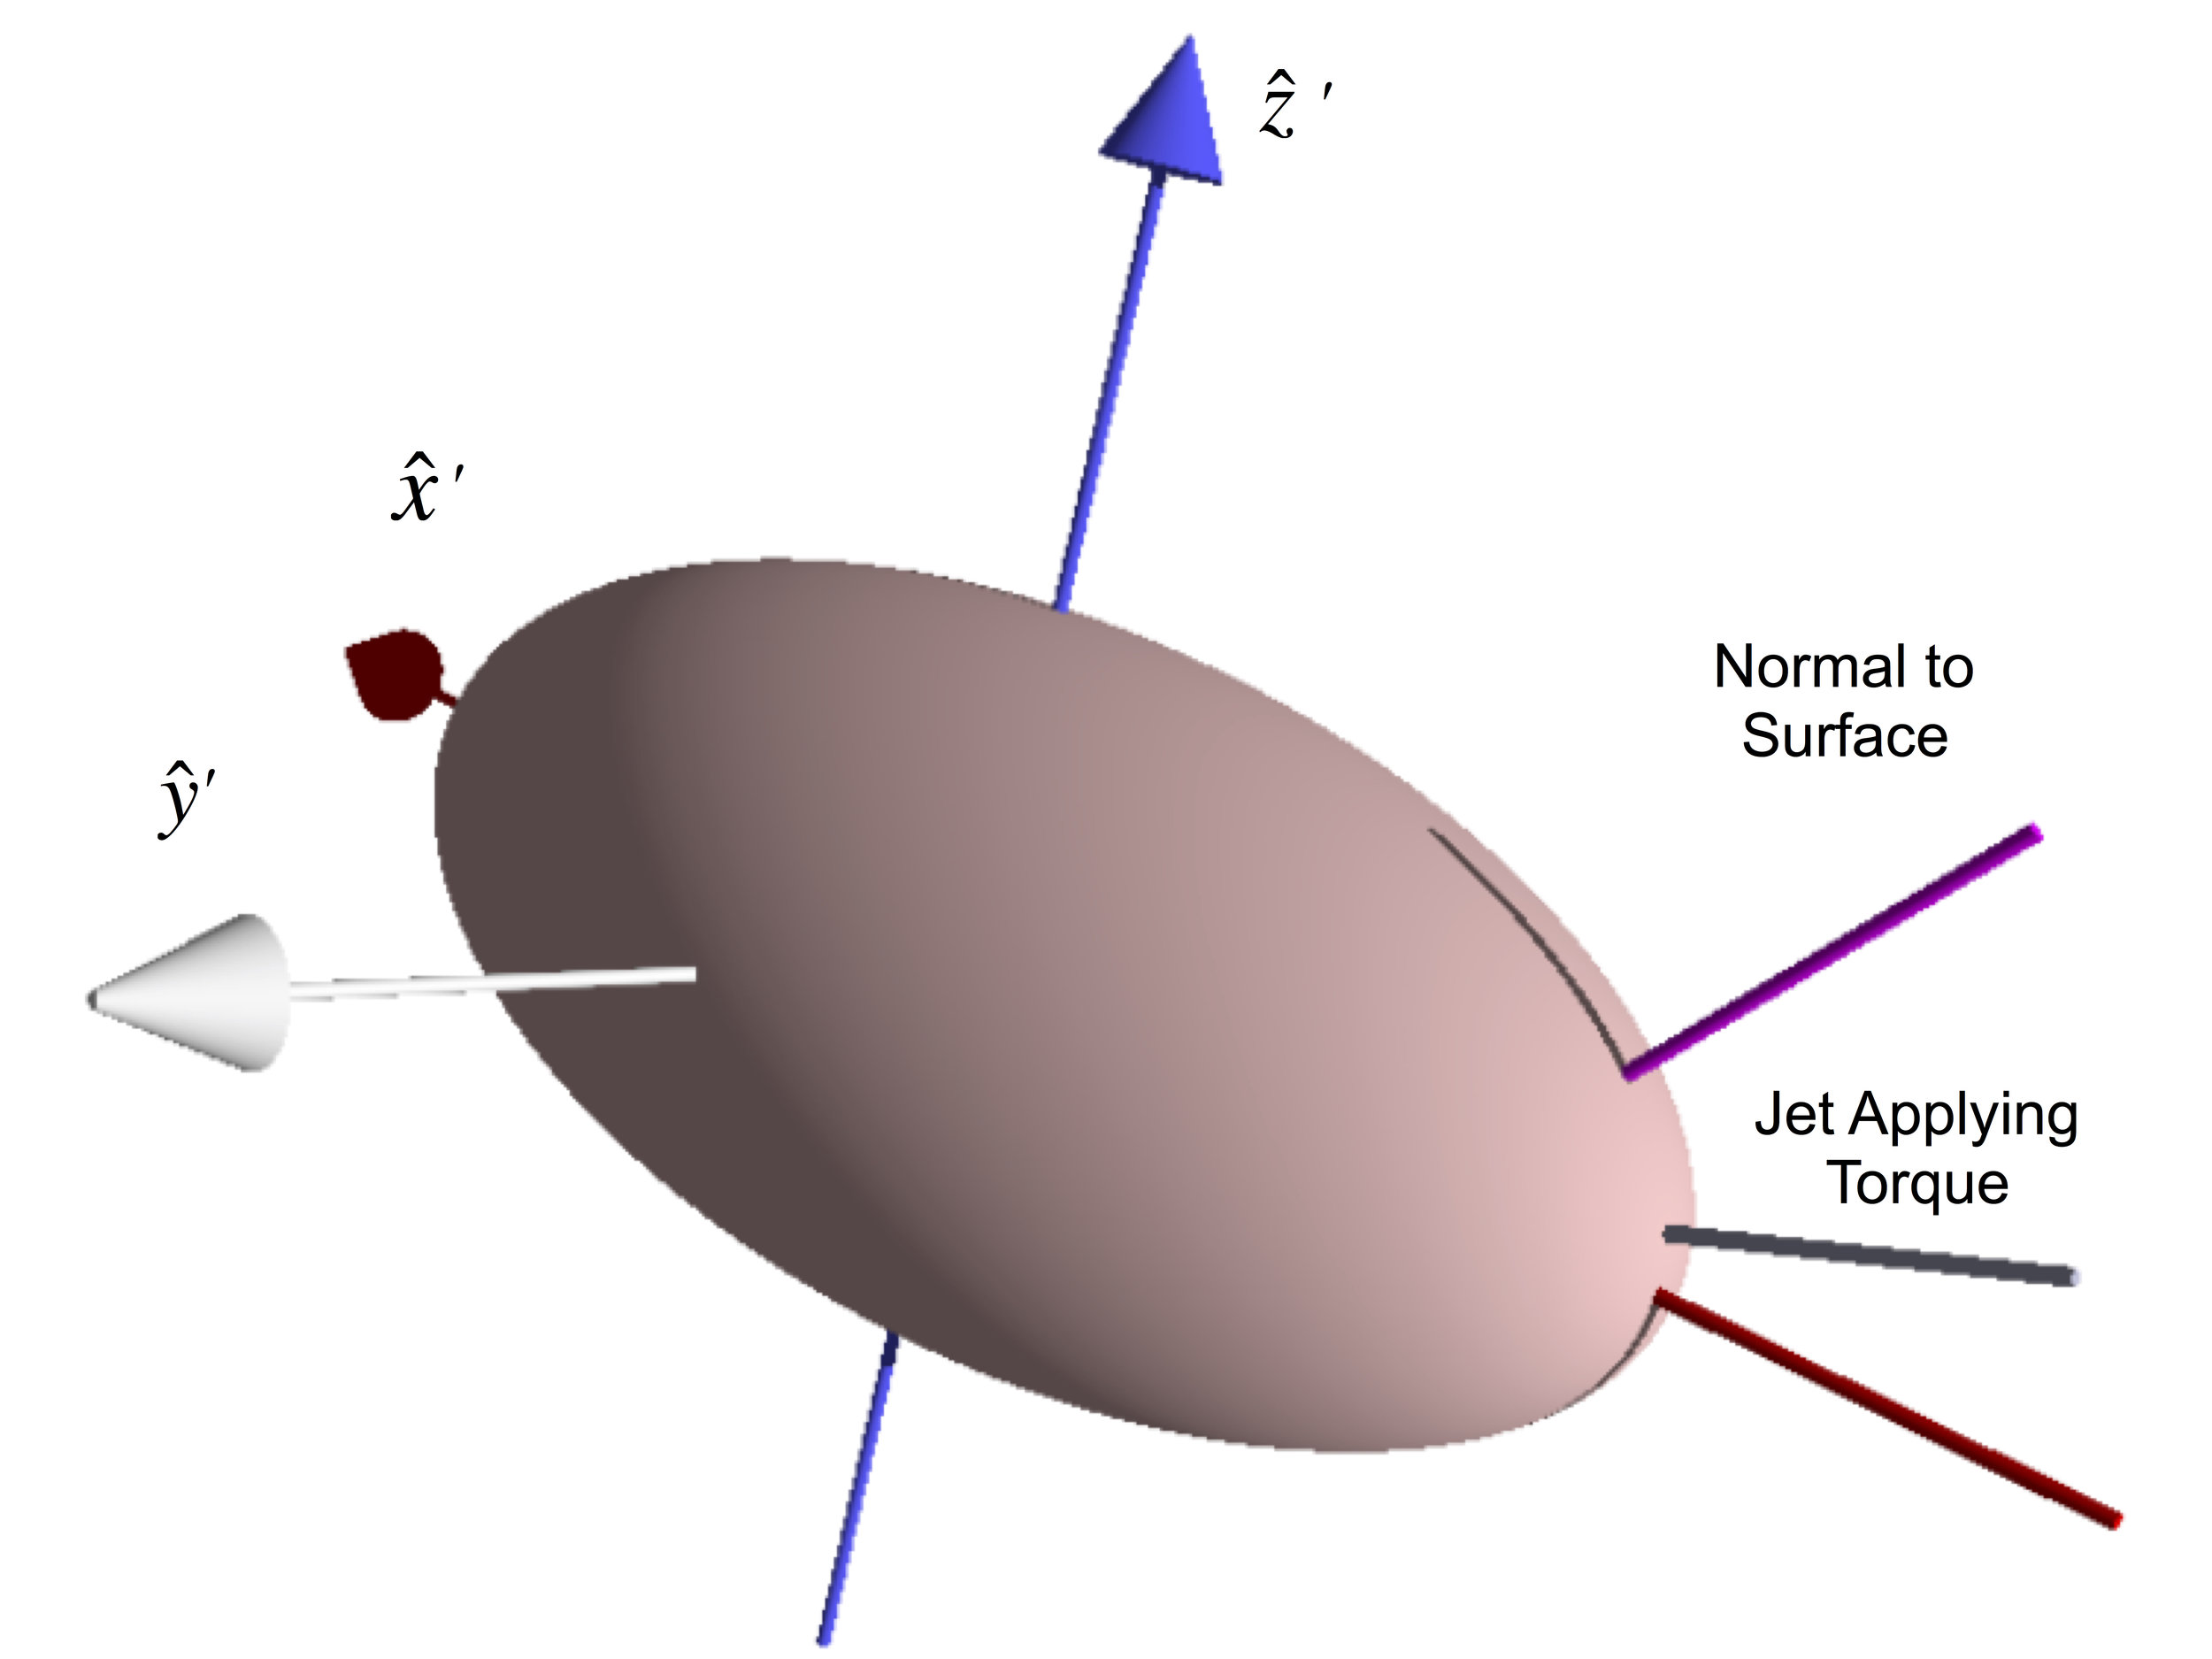 Figure  1: Schematic of the Adopted Jet Model